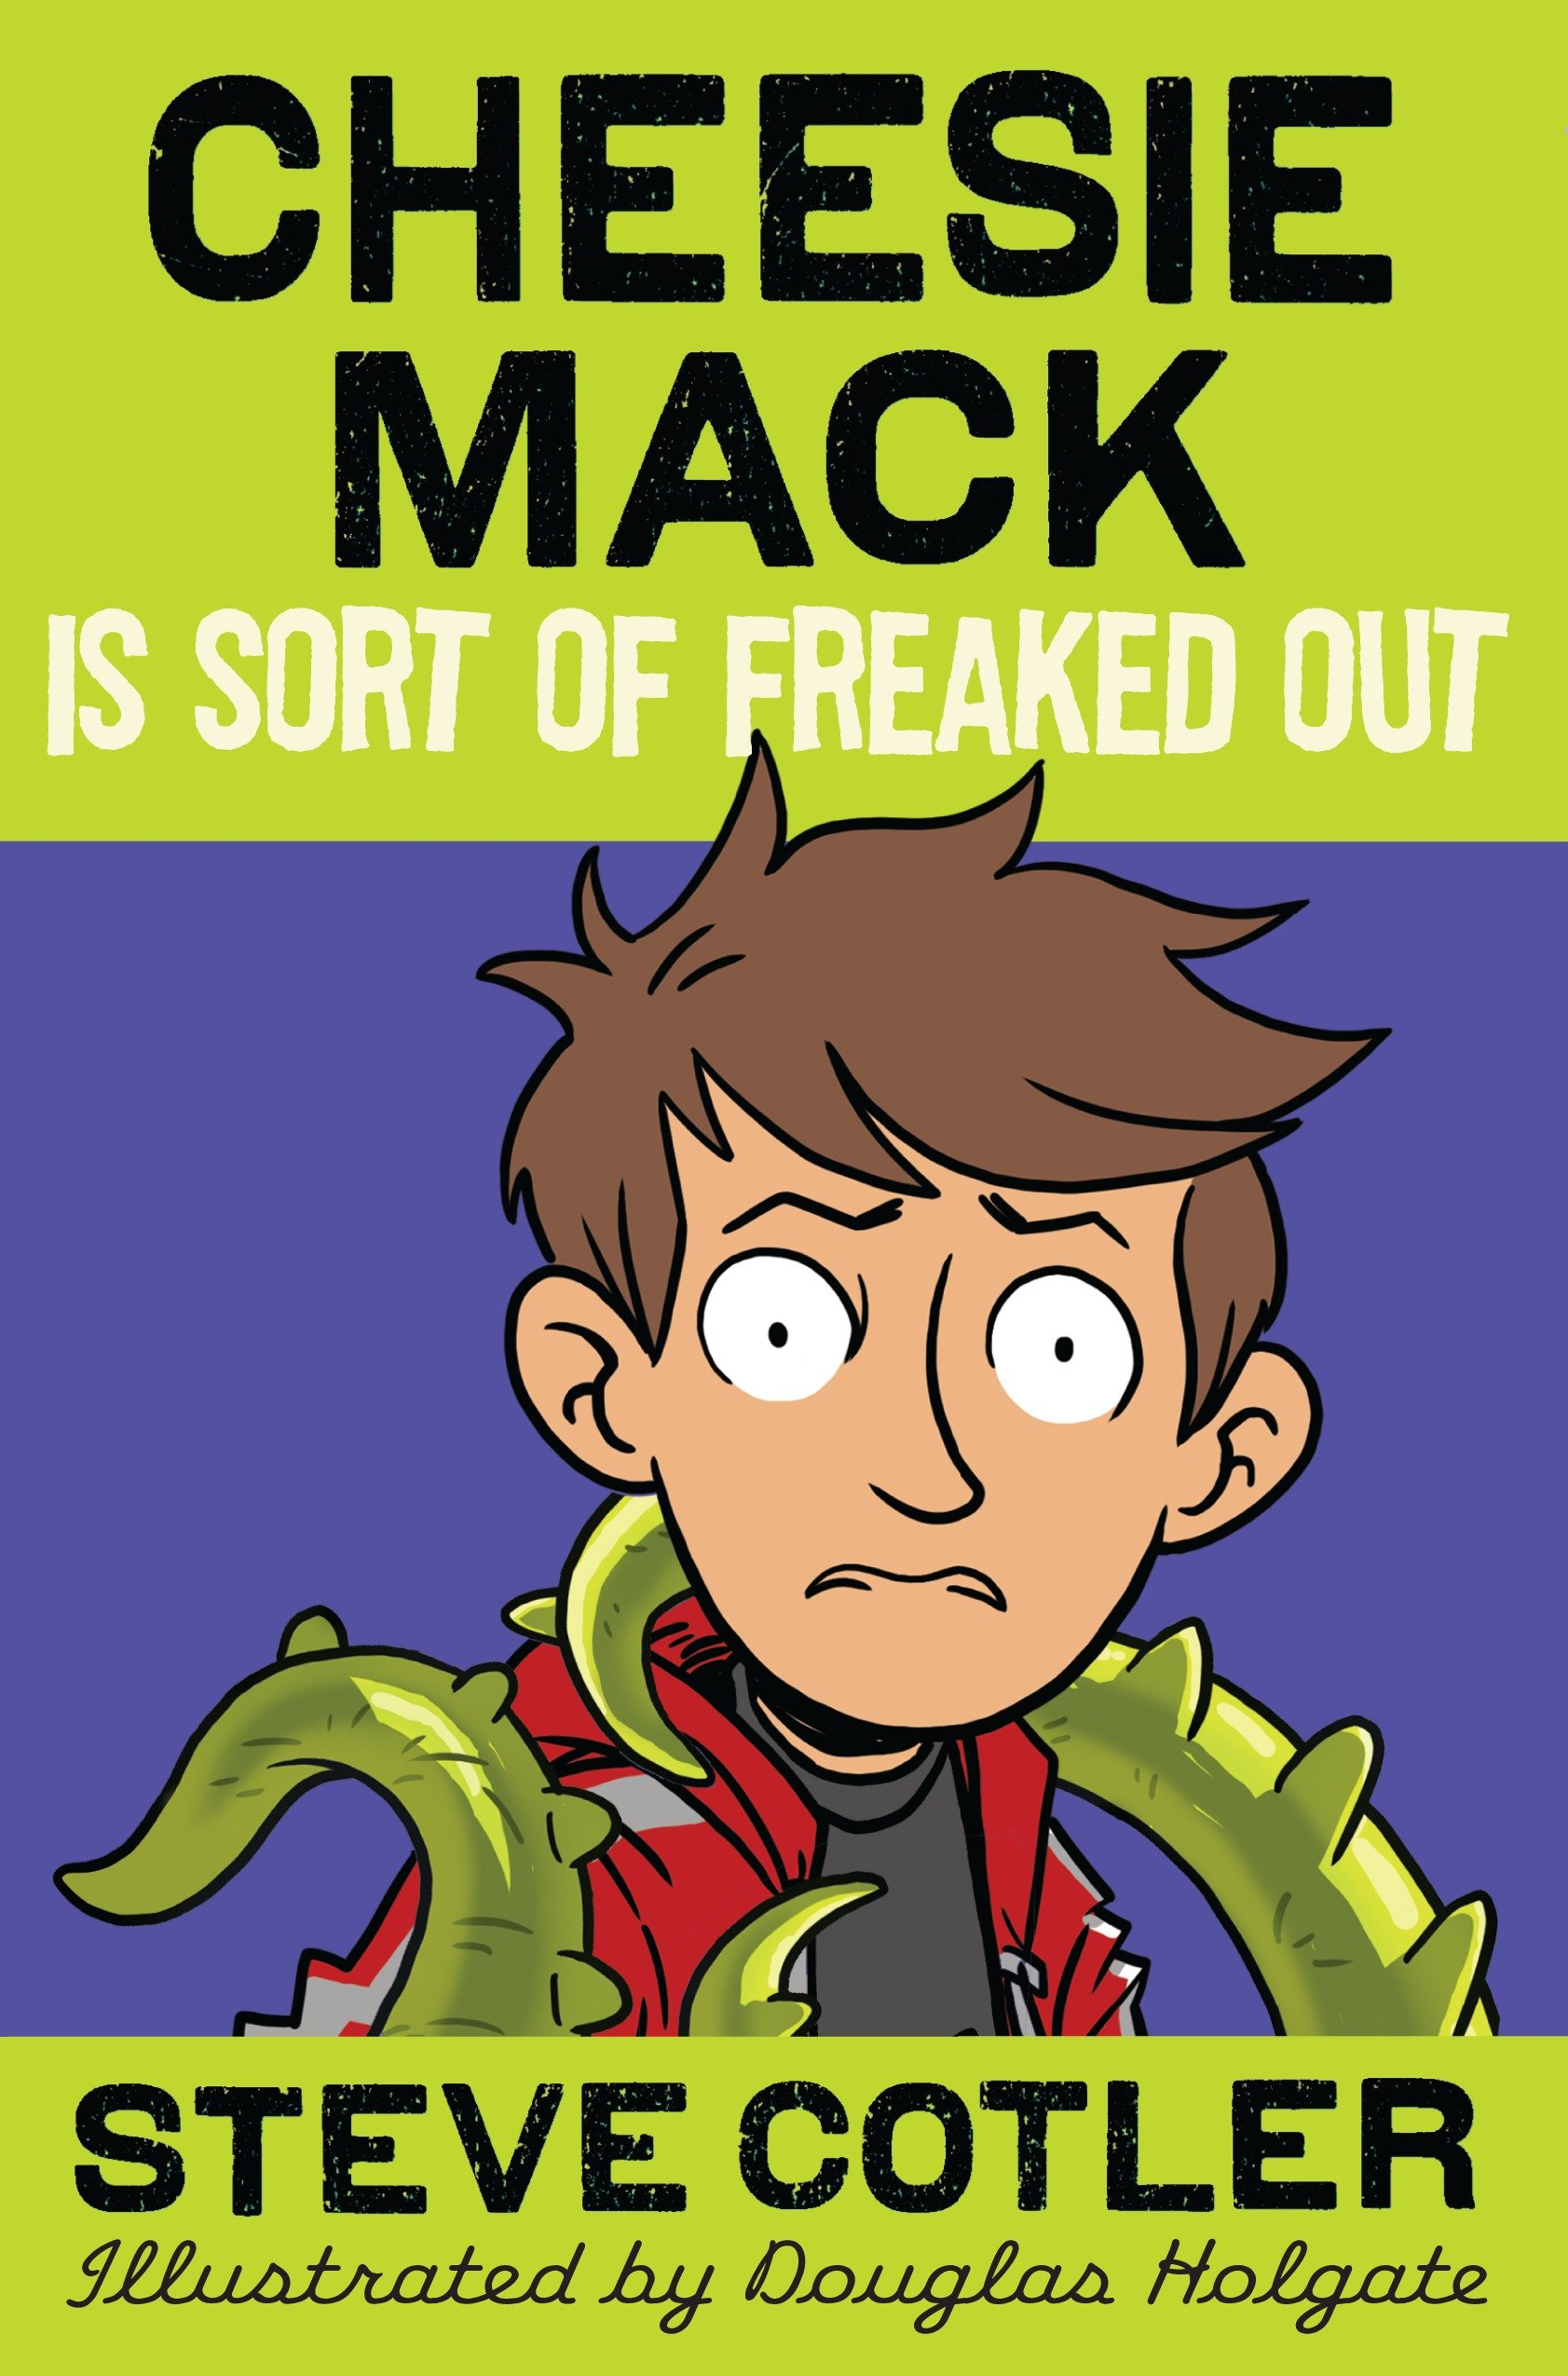 Cheesie Mack is sort of freaked out cover image